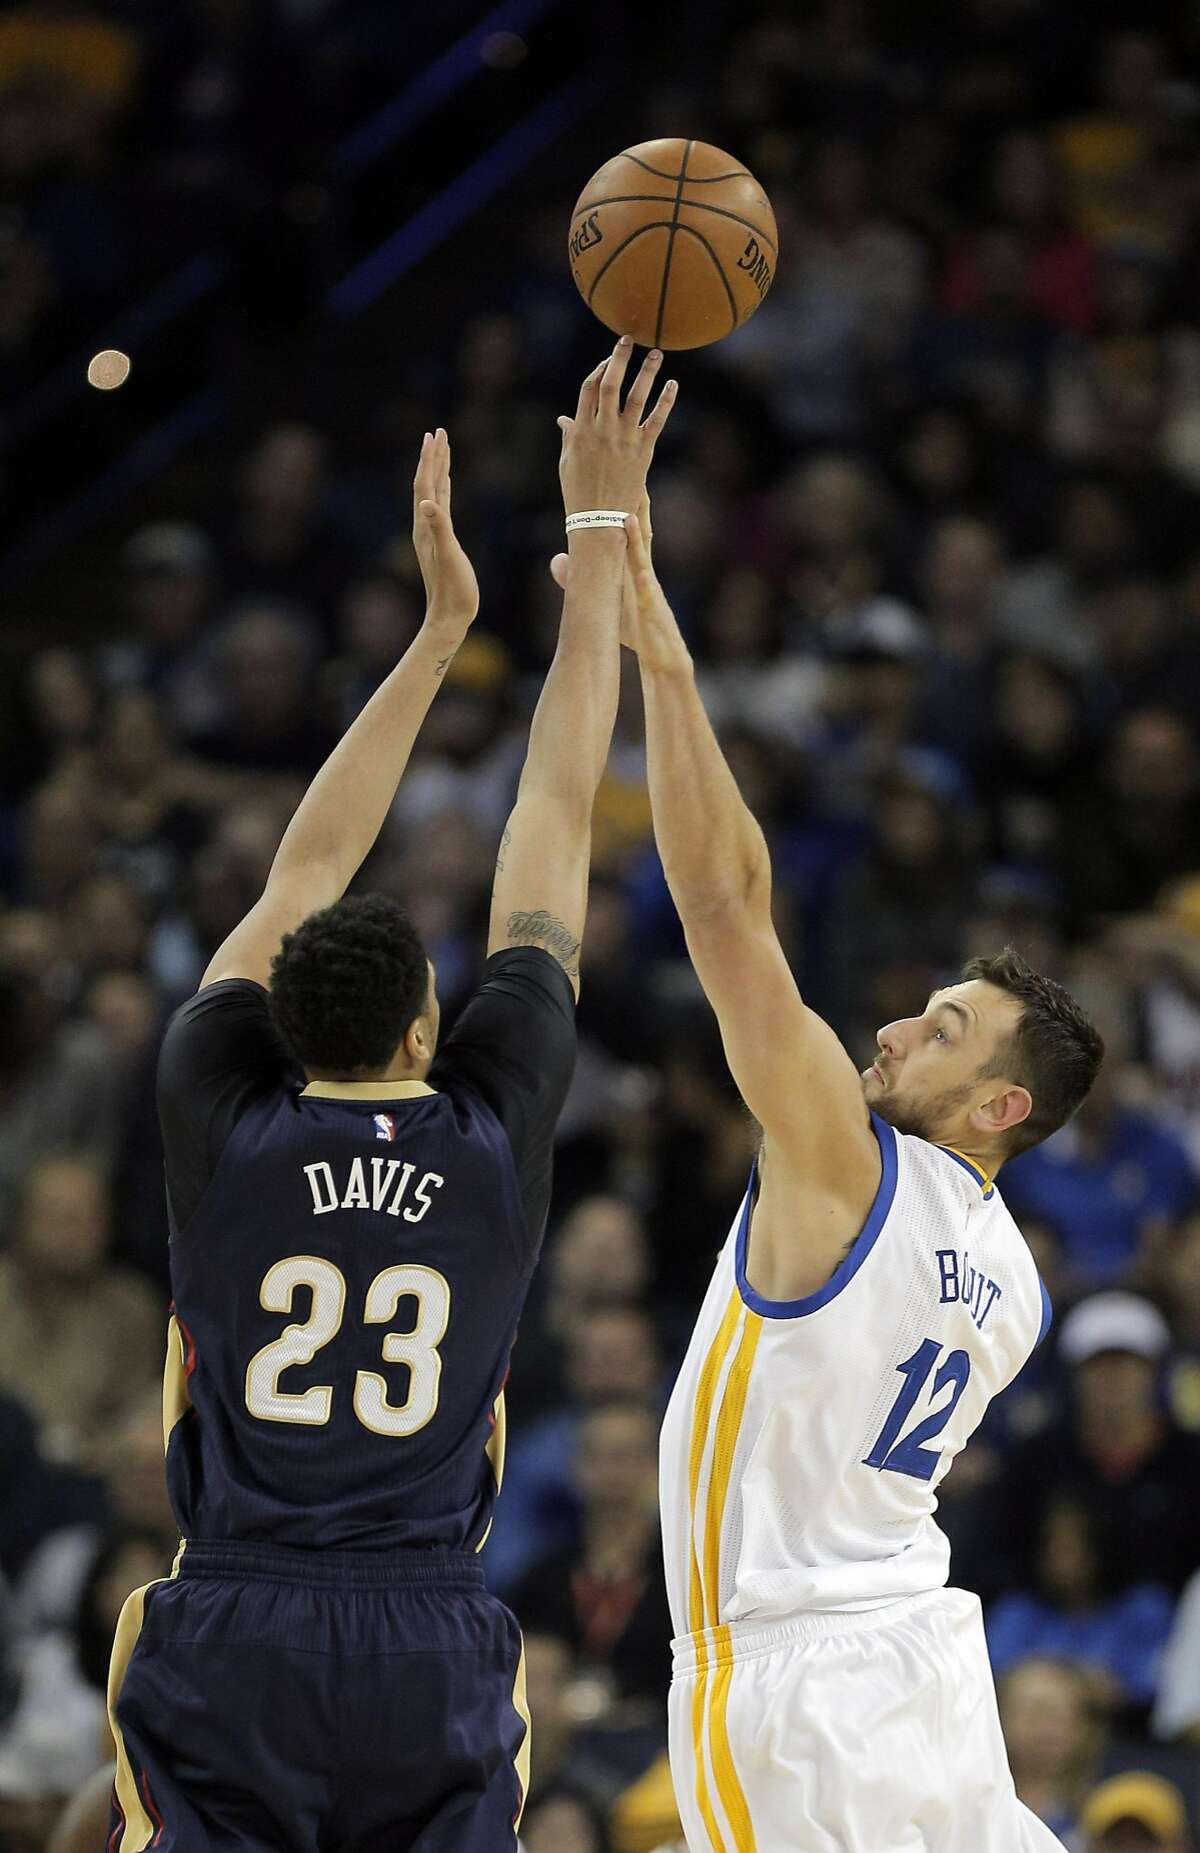 Andrew Bogut (12) defends against Anthony Davis (23) in the first half as the Golden State Warriors played the New Orleans Pelicans at Oracle Arena in Oakland, Calif., on Monday, March 14, 2016.